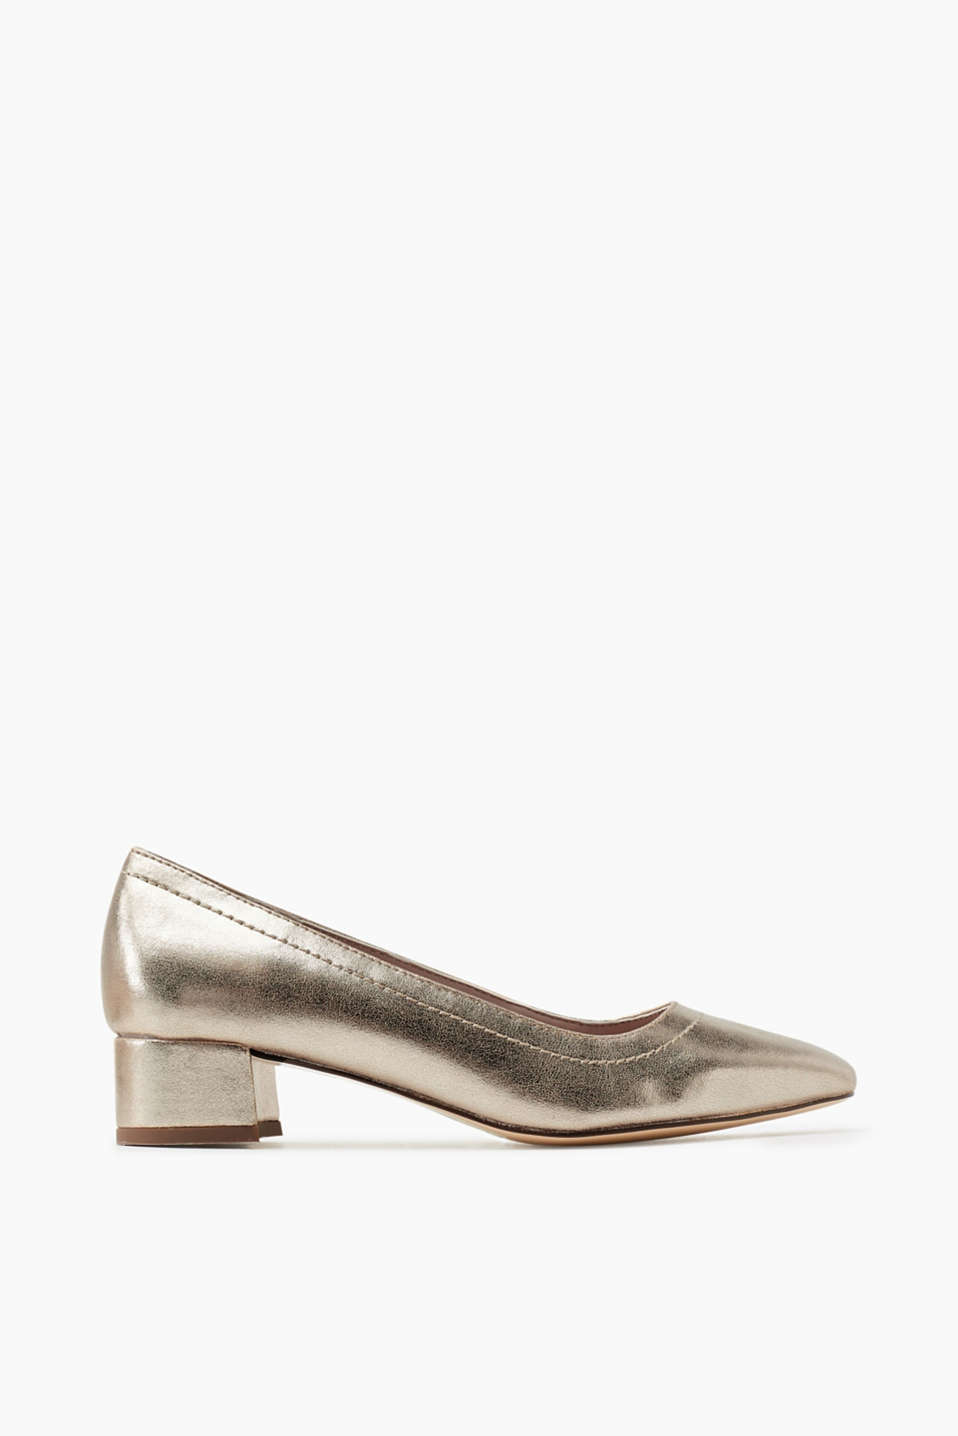 In a trendy, metallic look: faux leather court shoes in a square design with a block heel